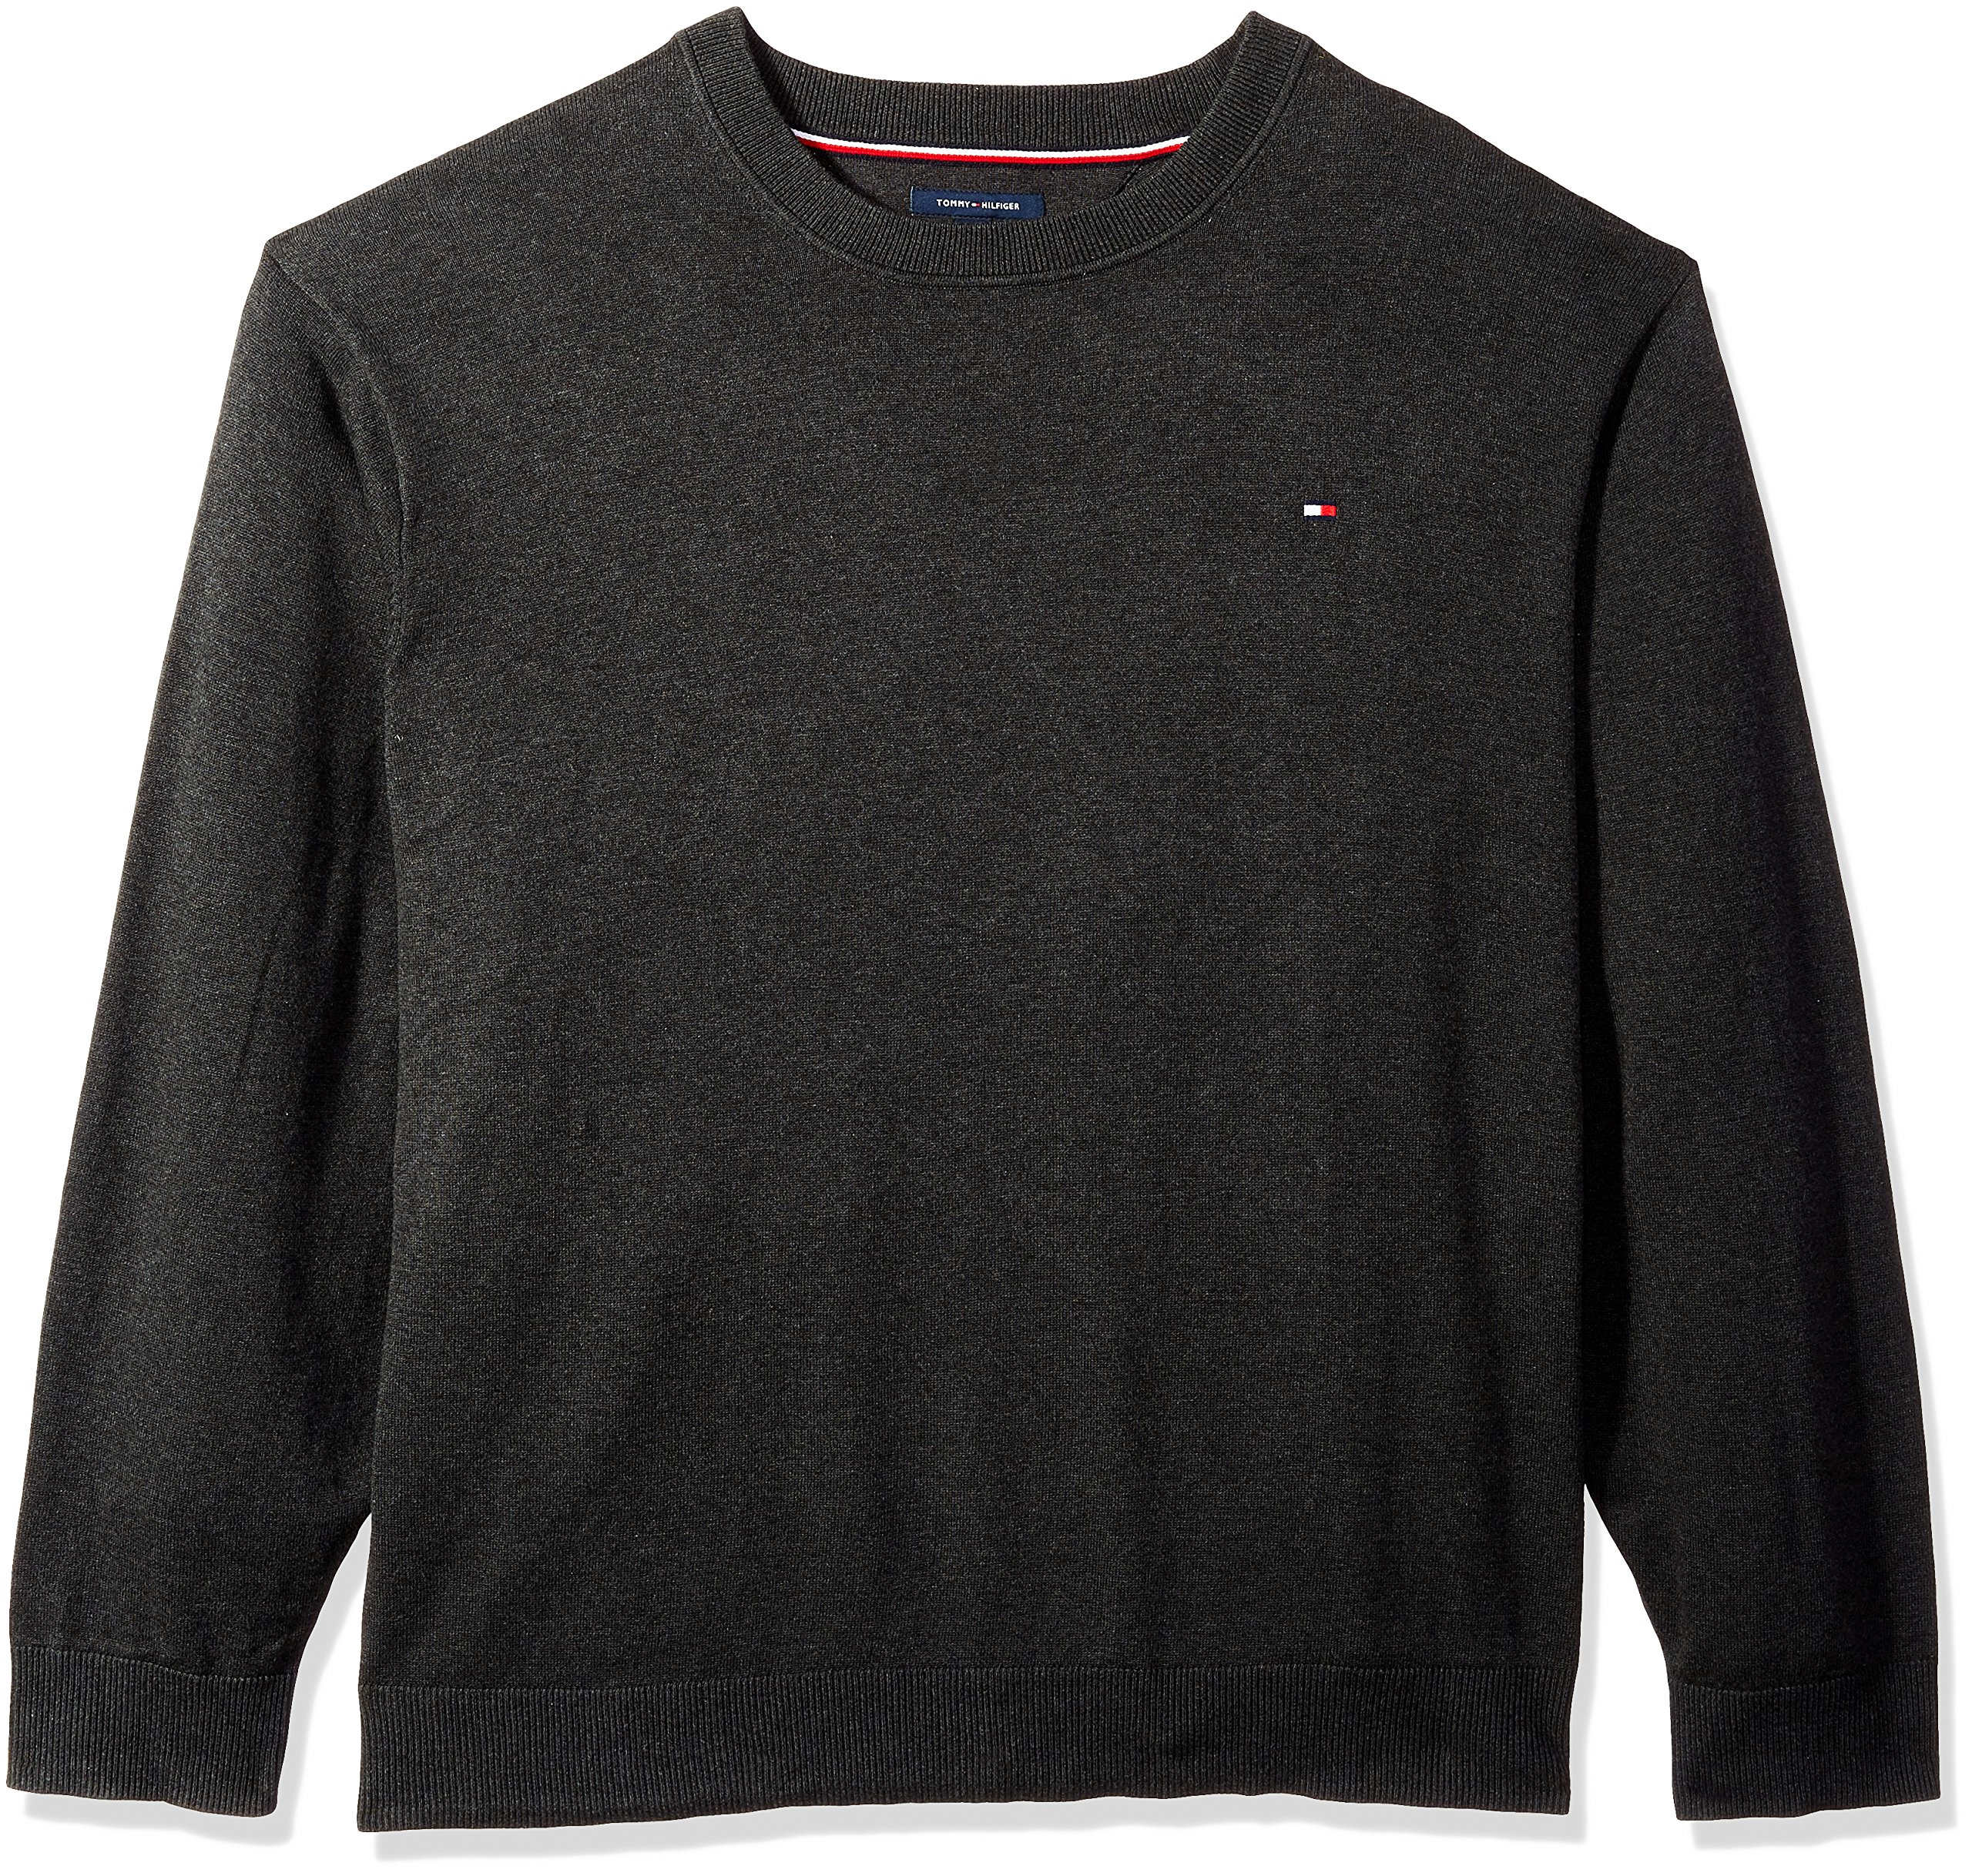 Tommy Hilfiger Men's Big and Tall Sweater Signature Solid Crewneck, Charcoal Grey Heather, BG-2XL